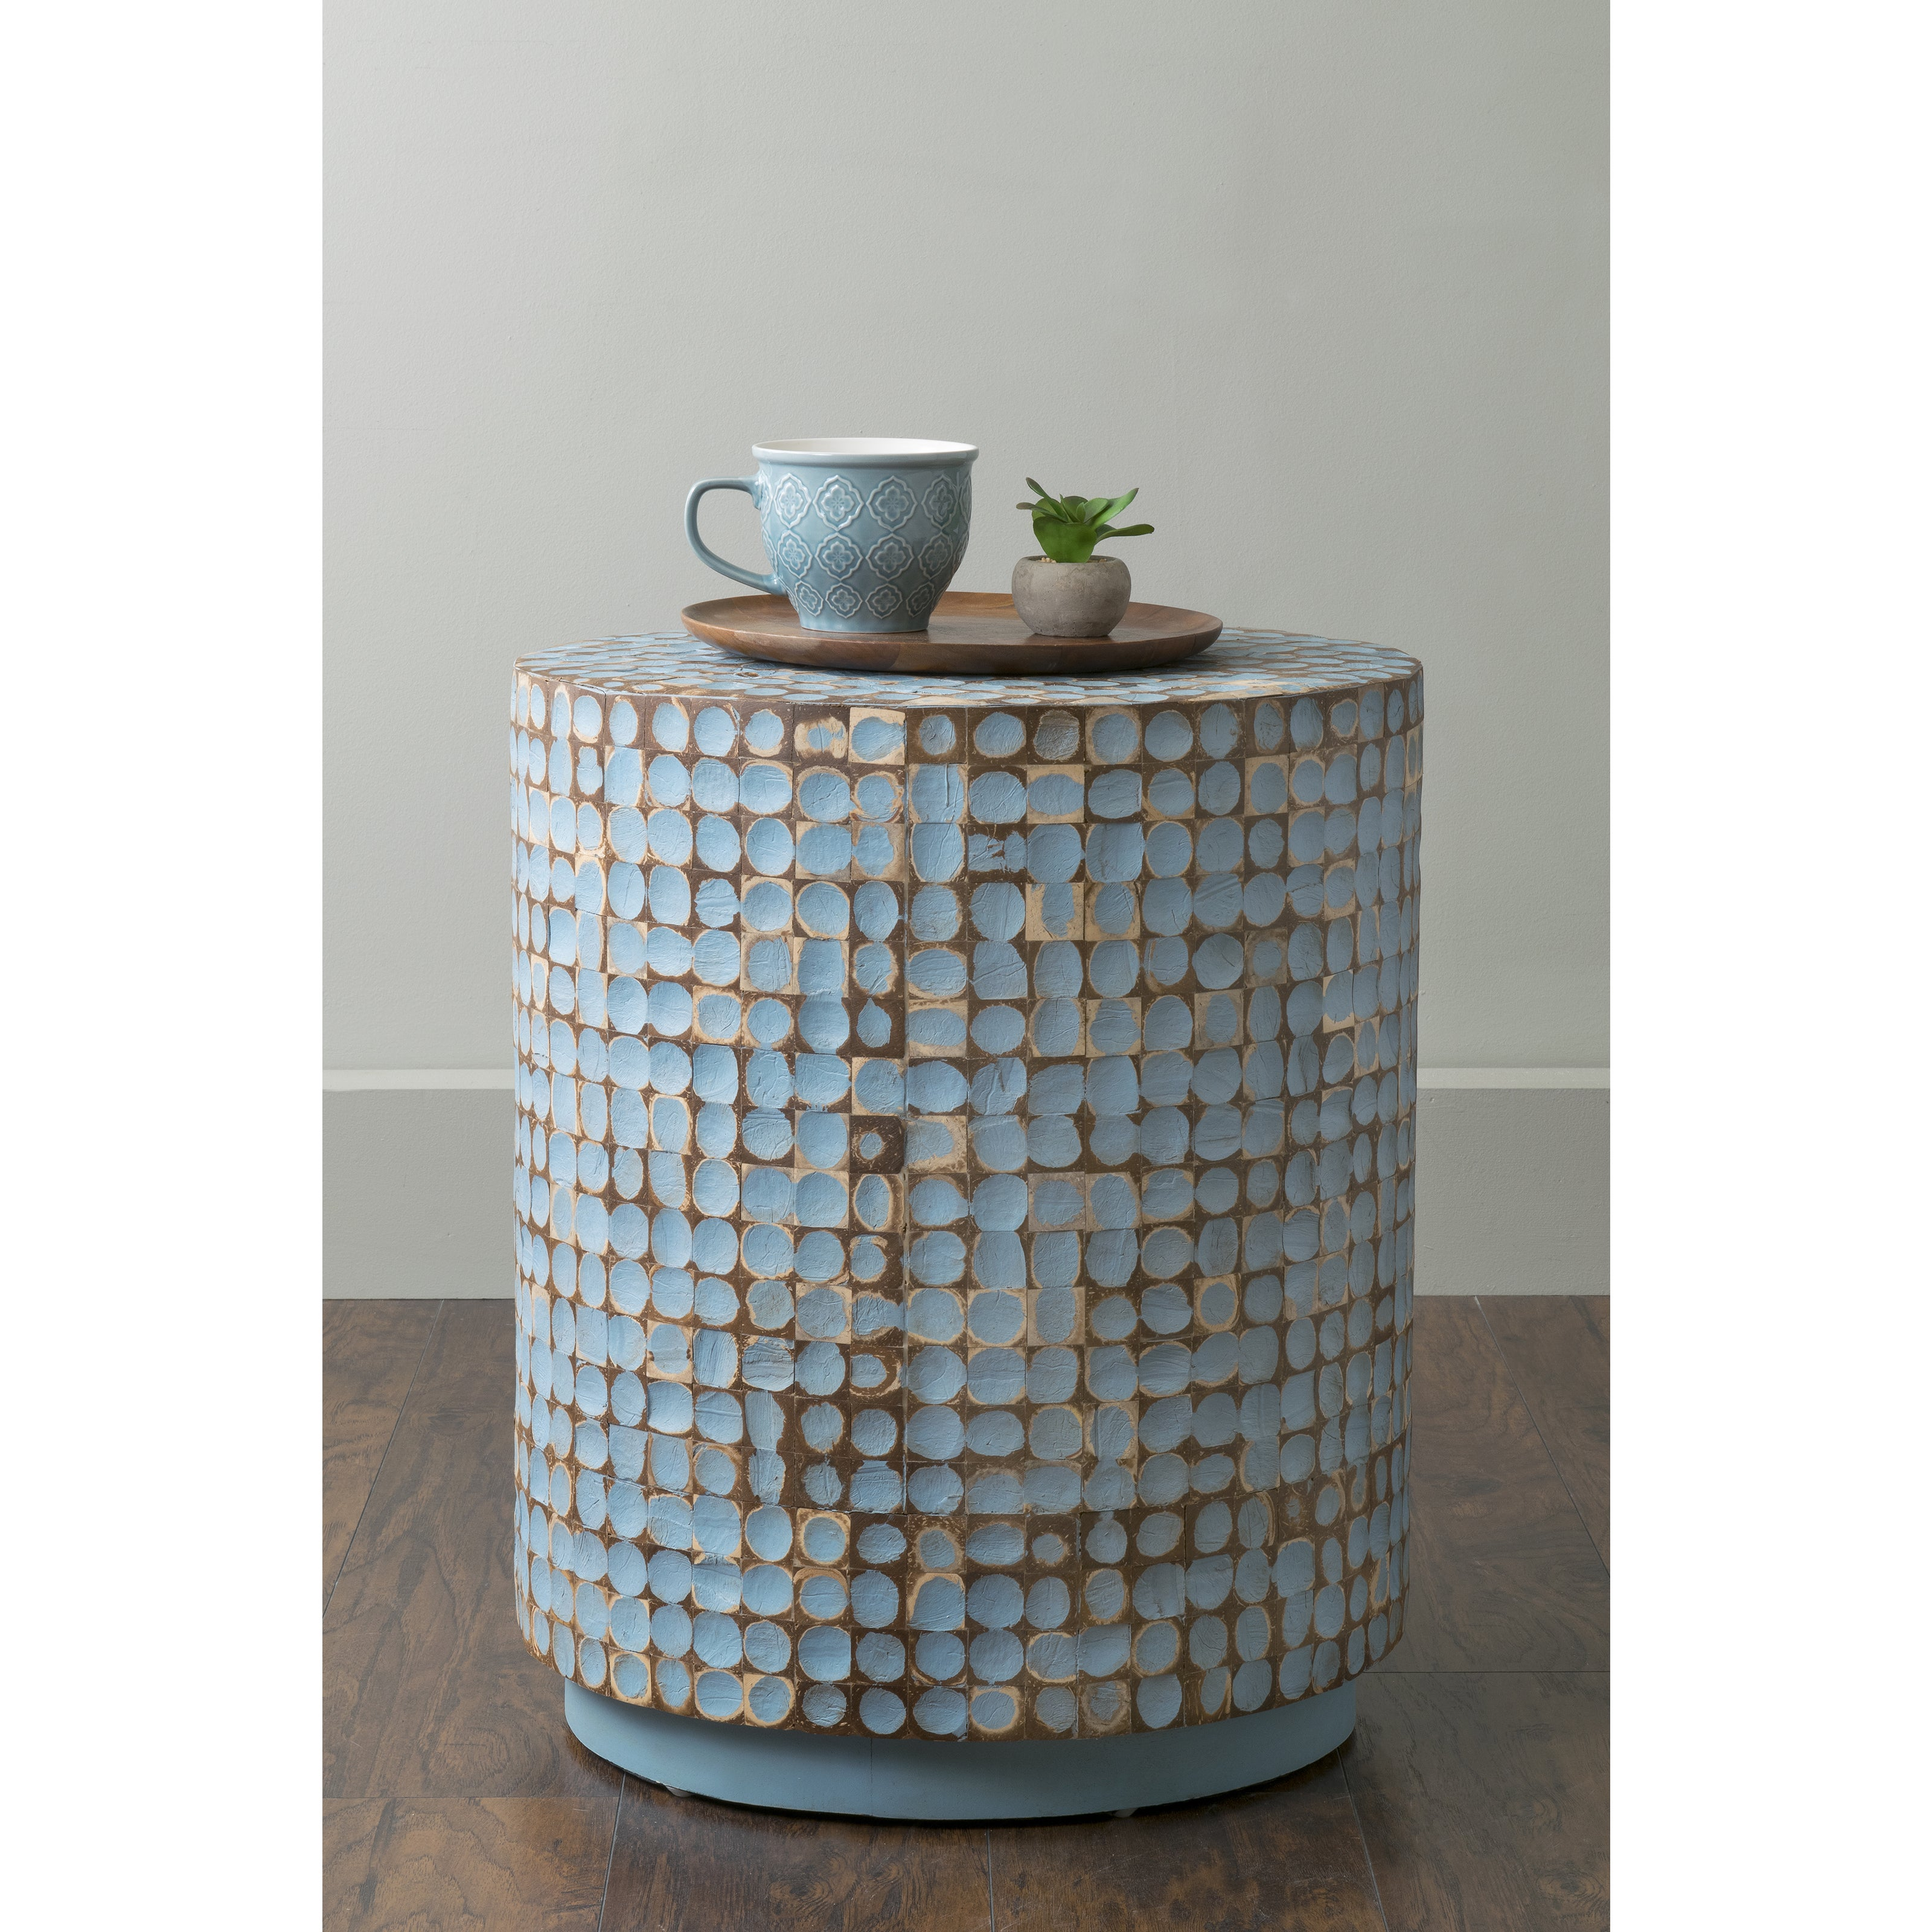 East At Main's Brillion Blue Round Coconut Shell Accent T...